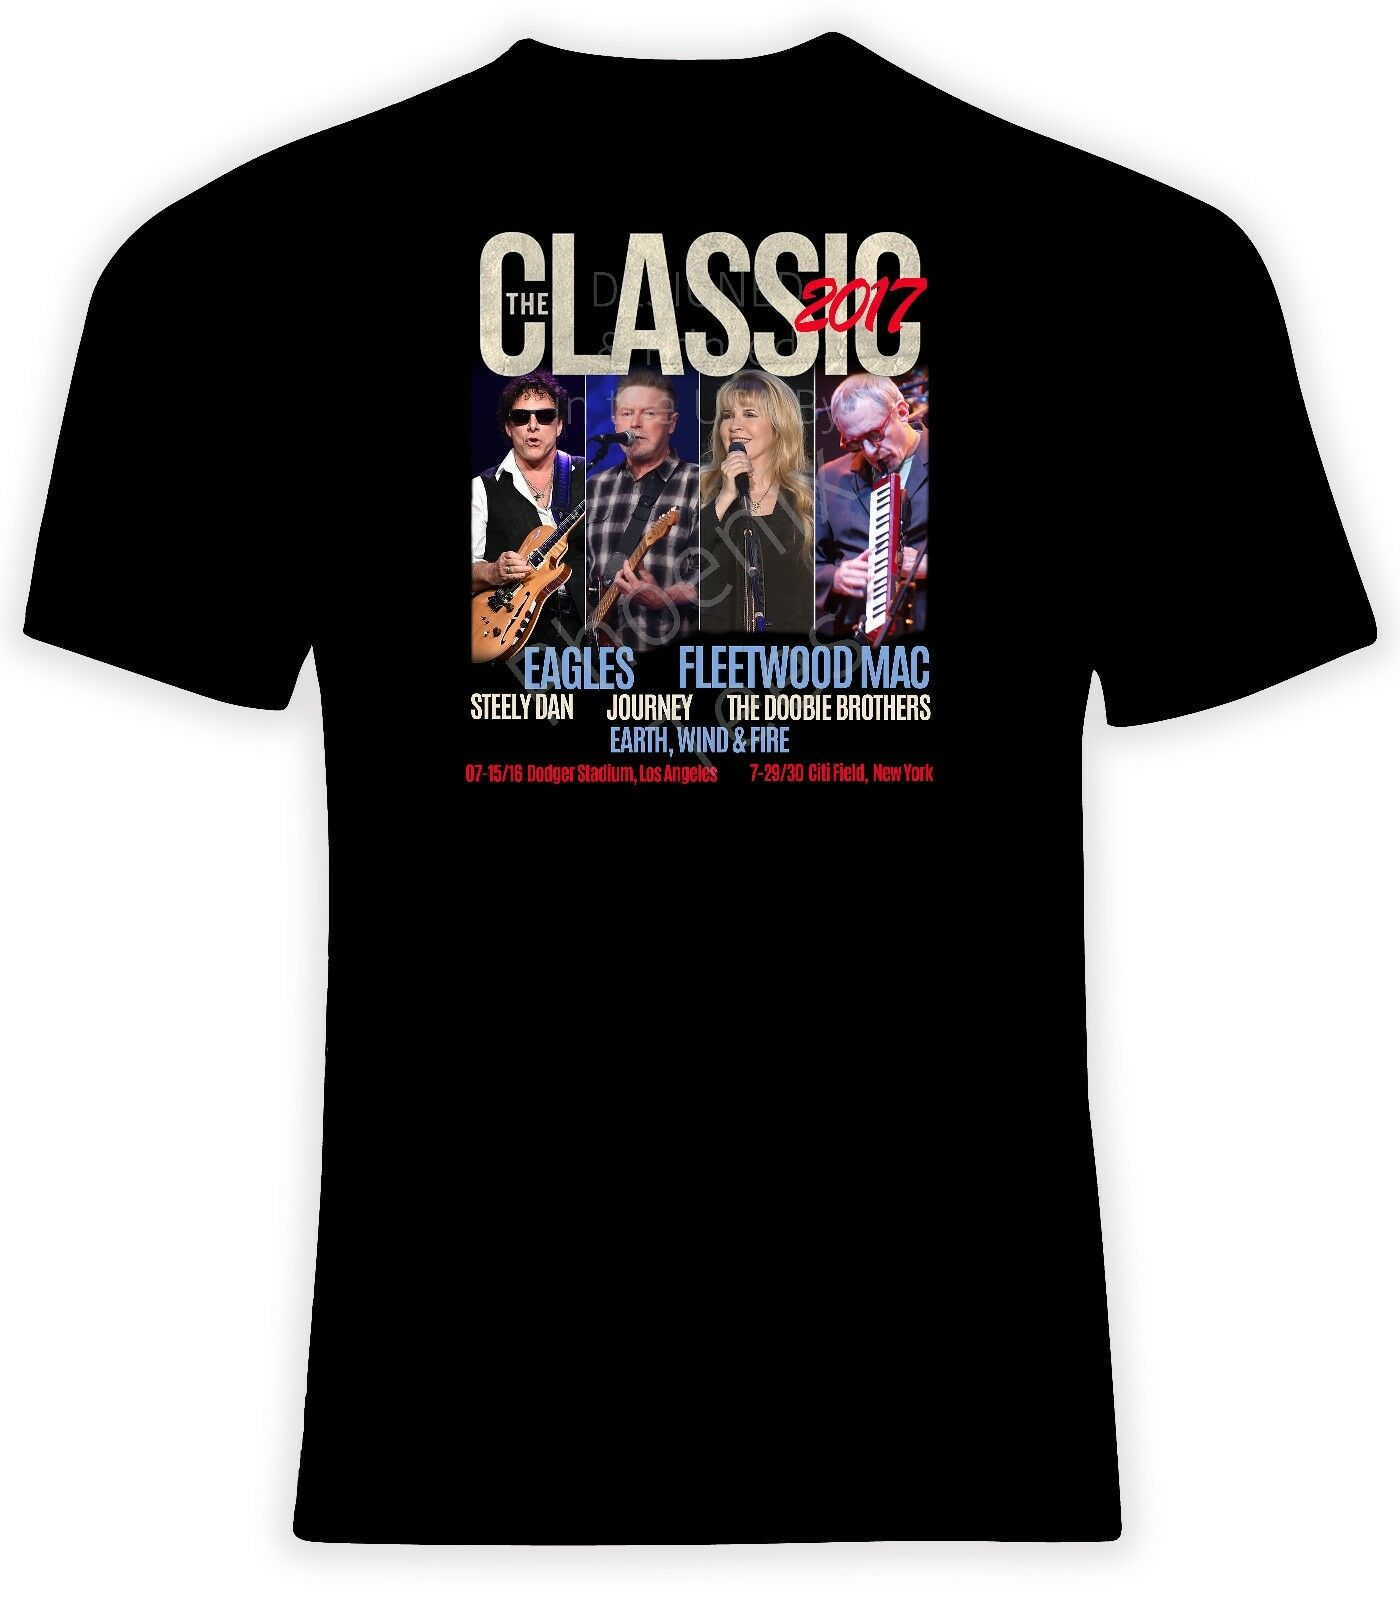 The Classic Concert East and West 2017 T shirt, Eagles, Fleetwood Mac, Journey